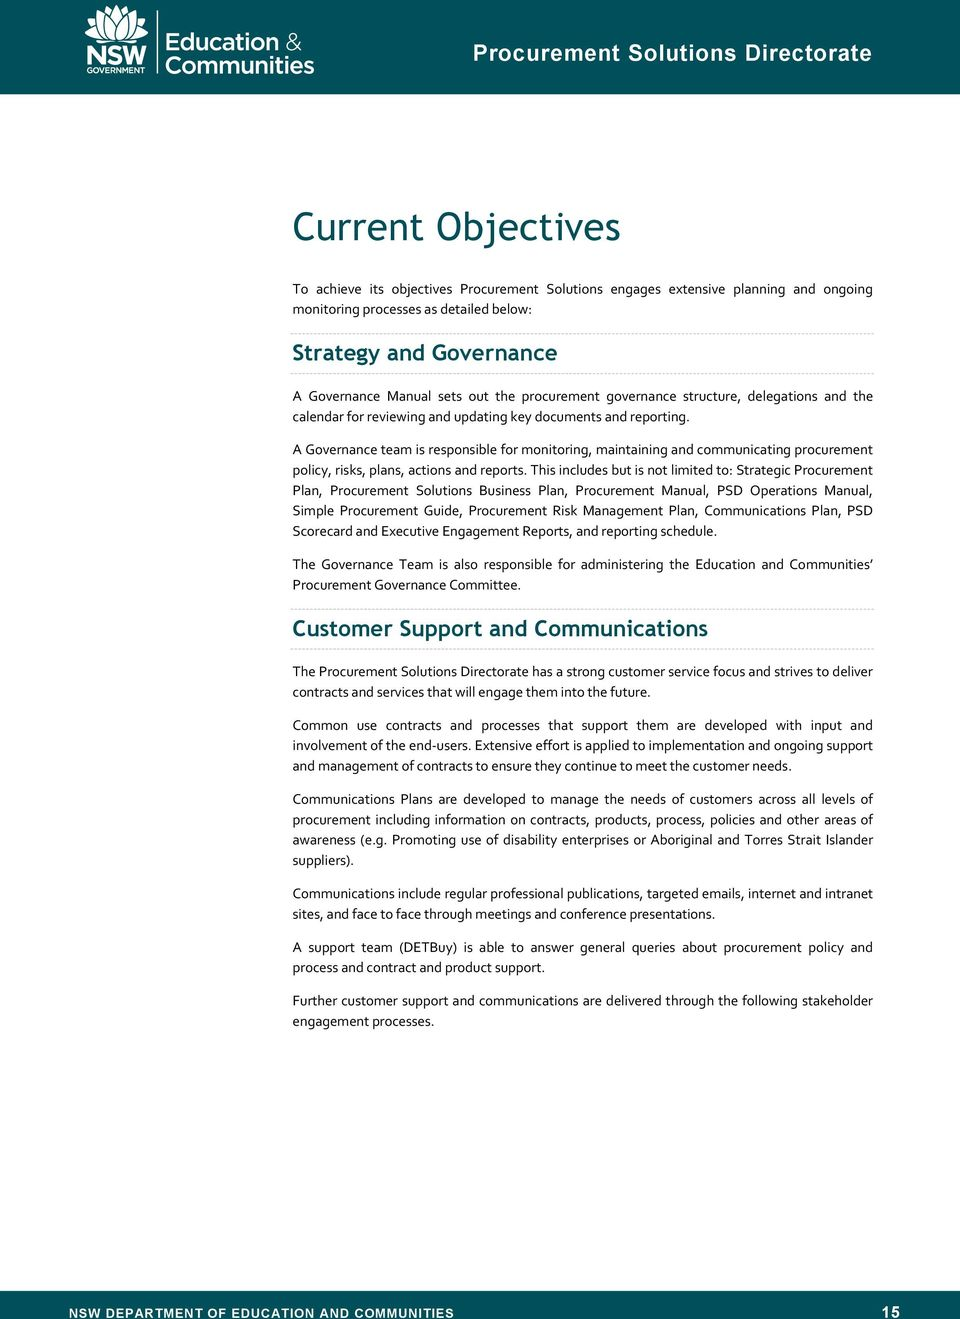 A Governance team is responsible for monitoring, maintaining and communicating procurement policy, risks, plans, actions and reports.